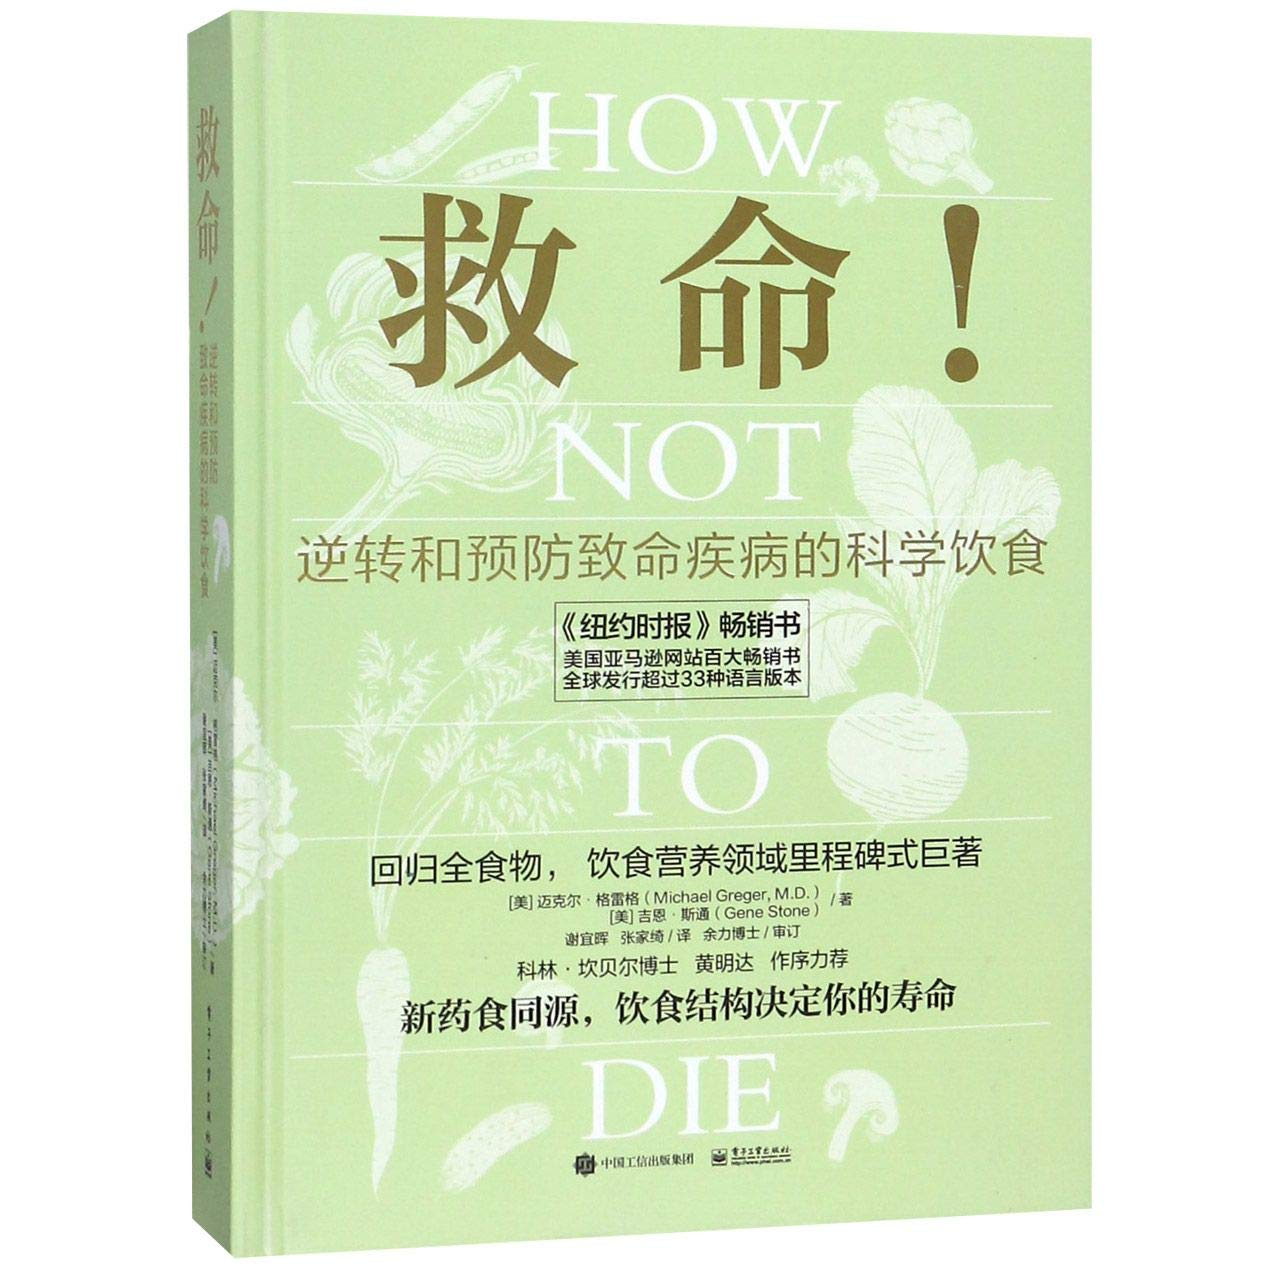 How Not To Die (Chinese Edition) By Michael Greger.M.D (Author), Gene Stone (Author)